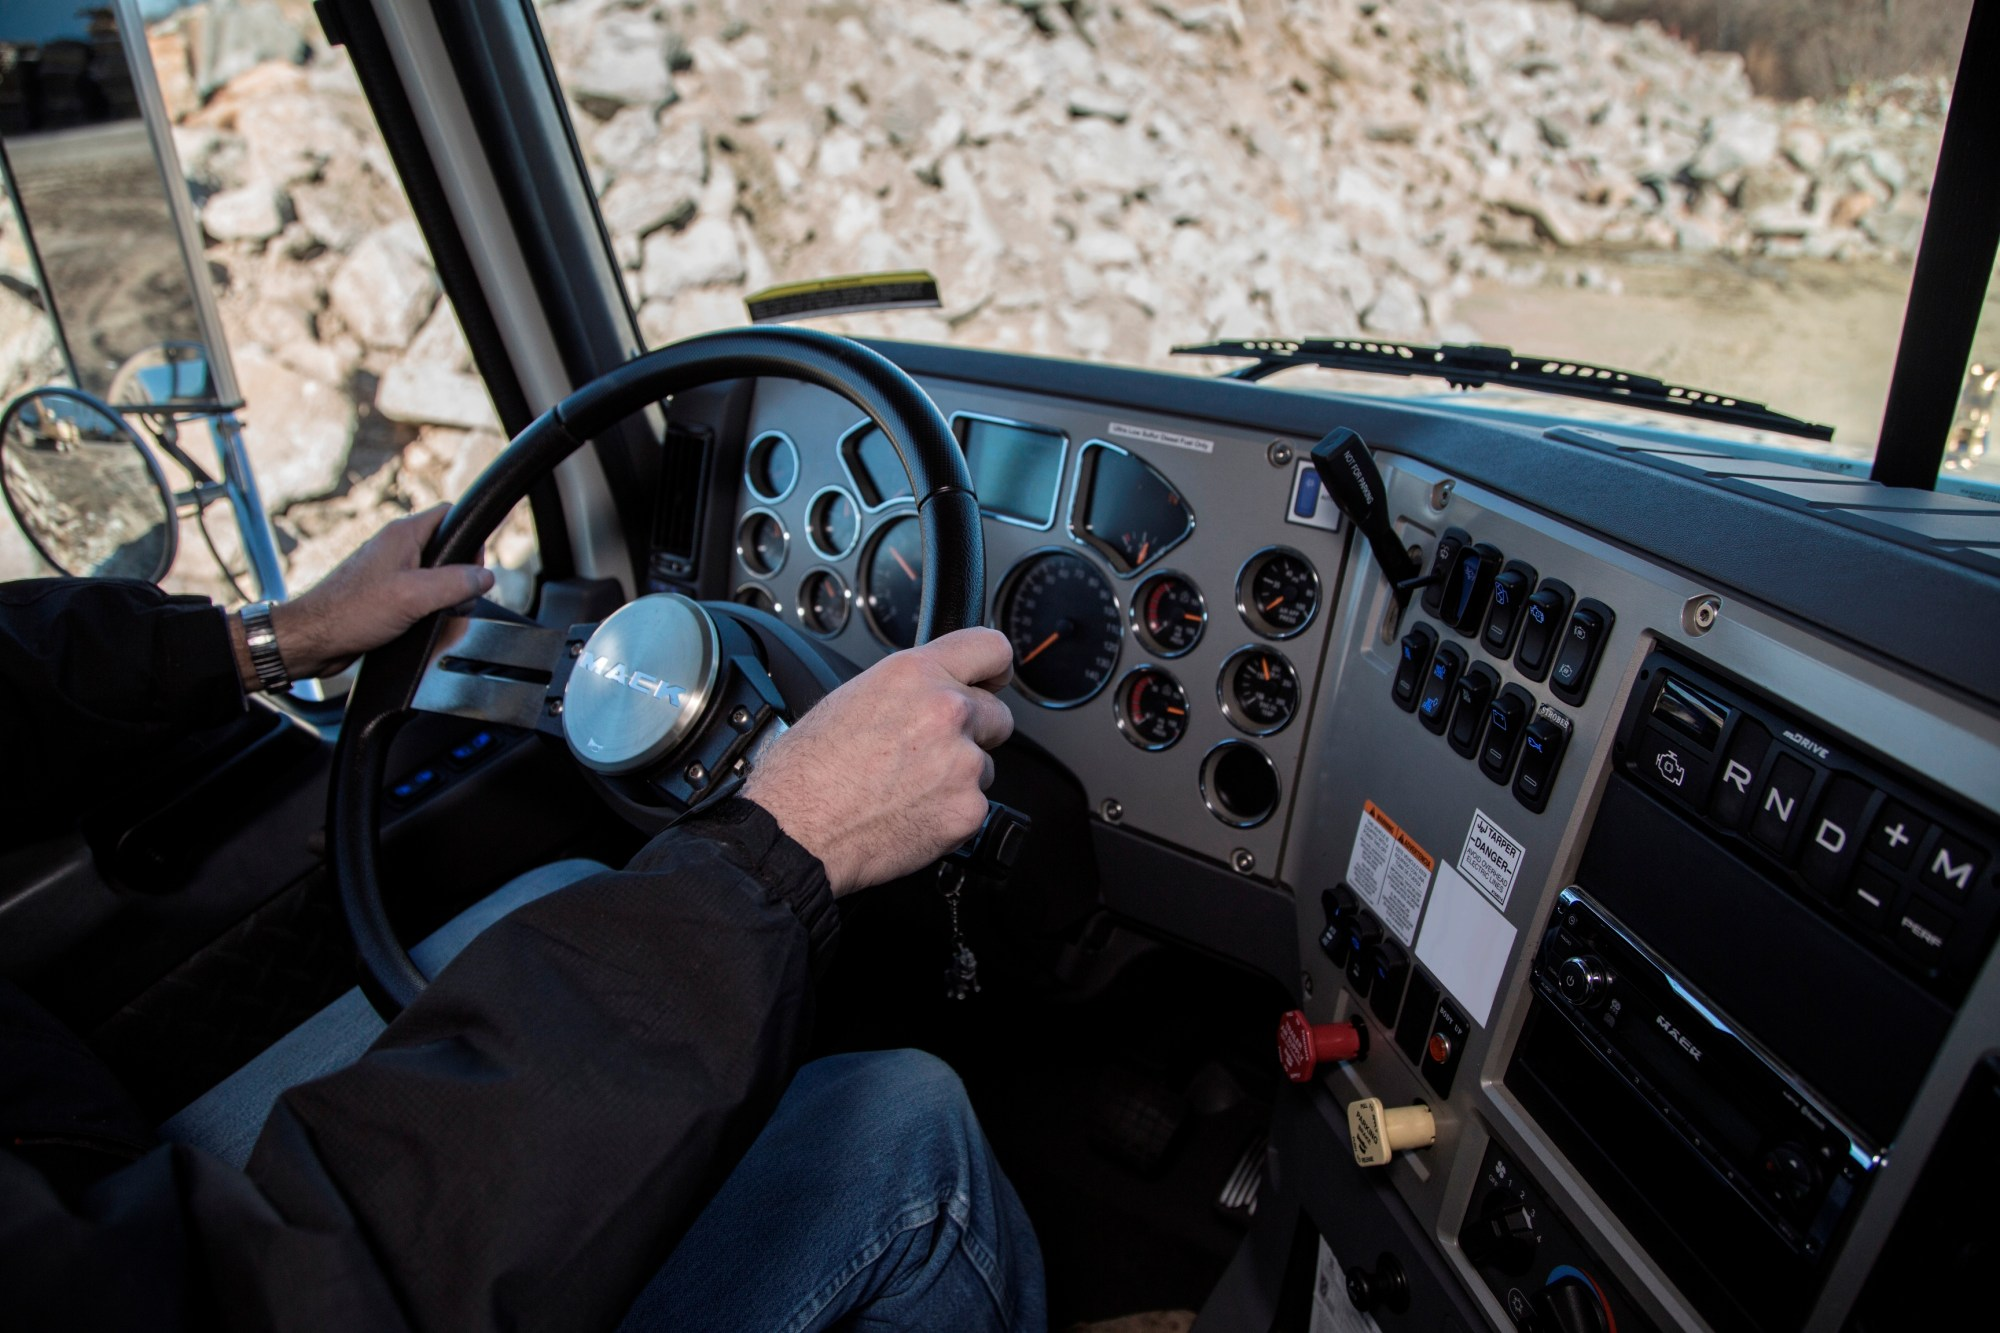 hight resolution of mack granite mdrive hd cab interior